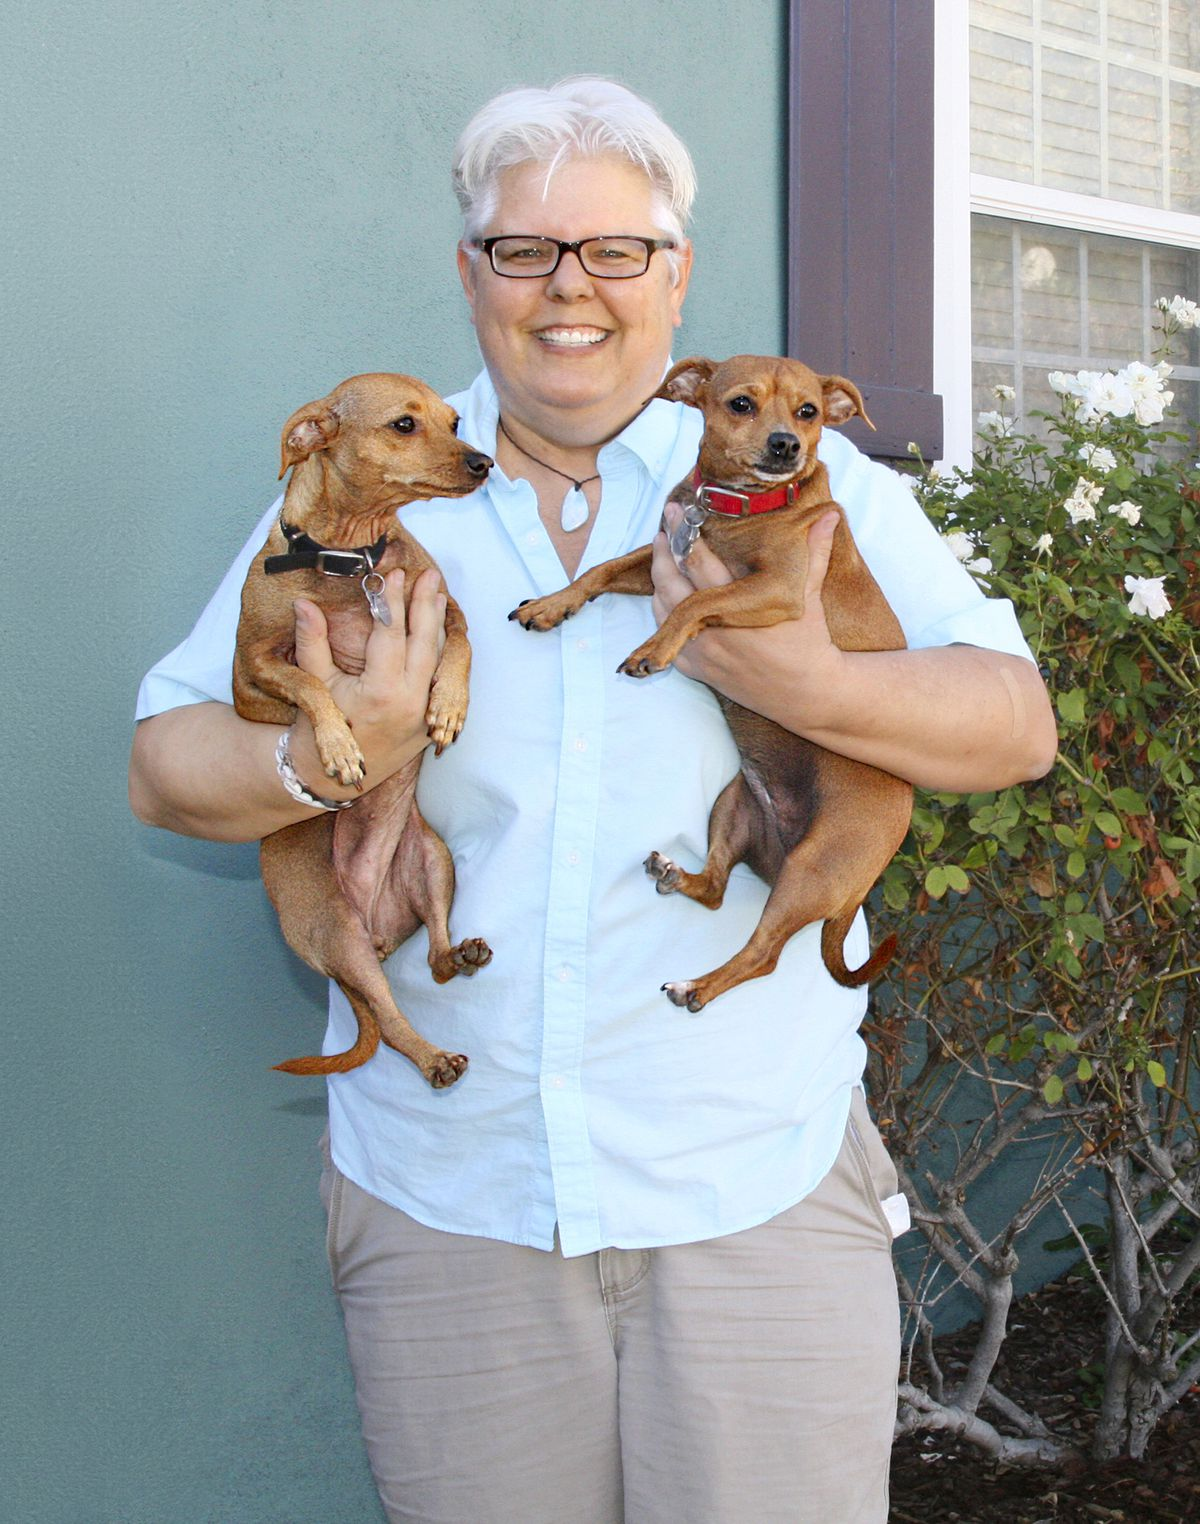 Lori Spiak And Her Two Dogs, Lana And Andy